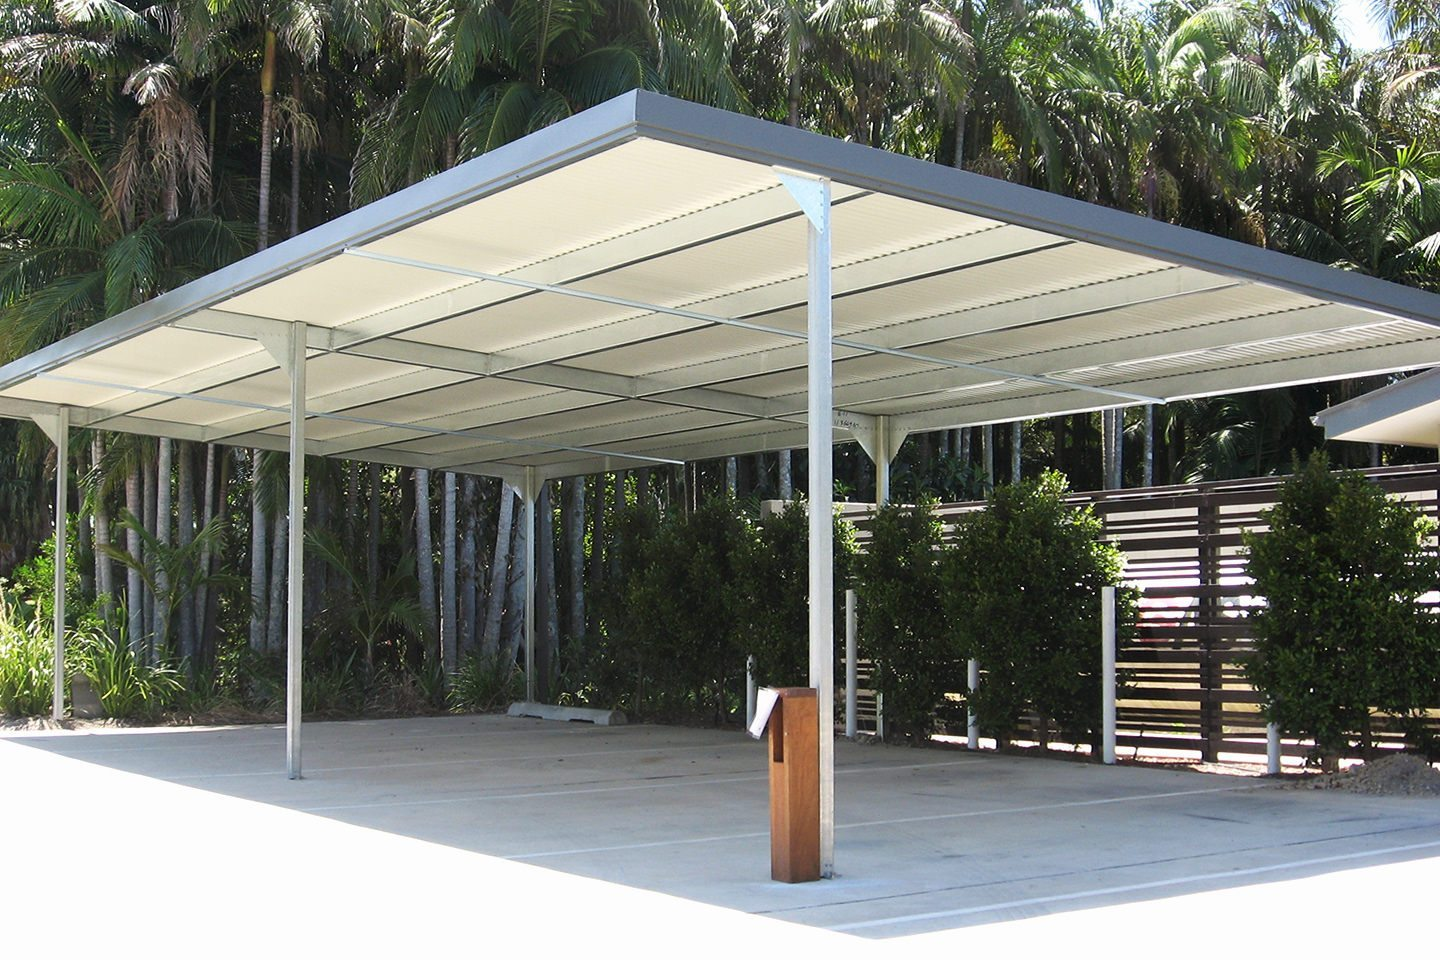 Carports sheds and garages for sale ranbuild for Carports and garages